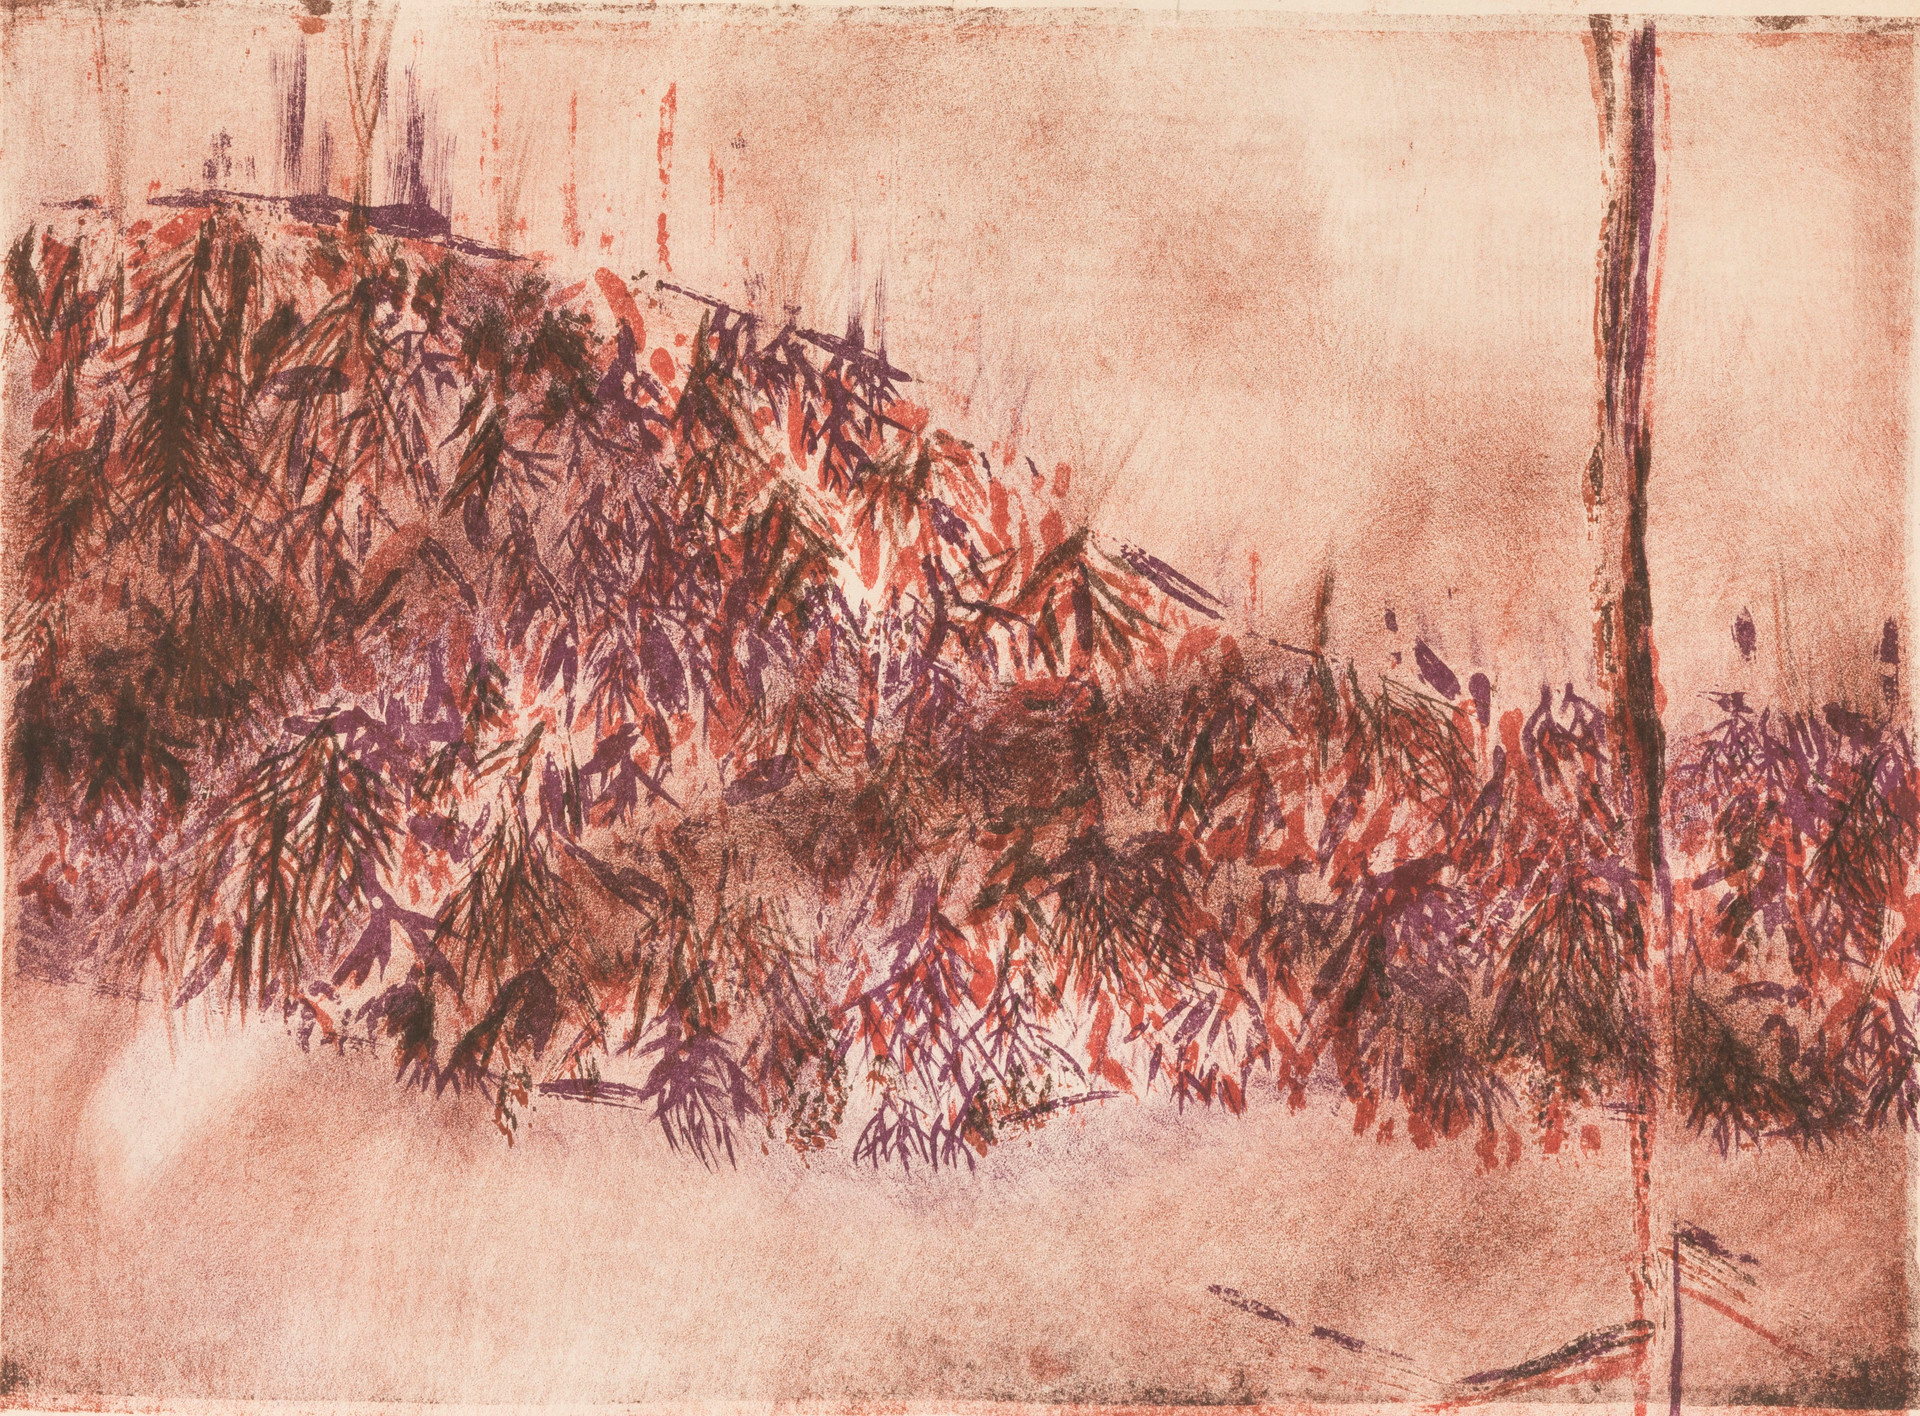 Untitled - red and purple foliage on hill